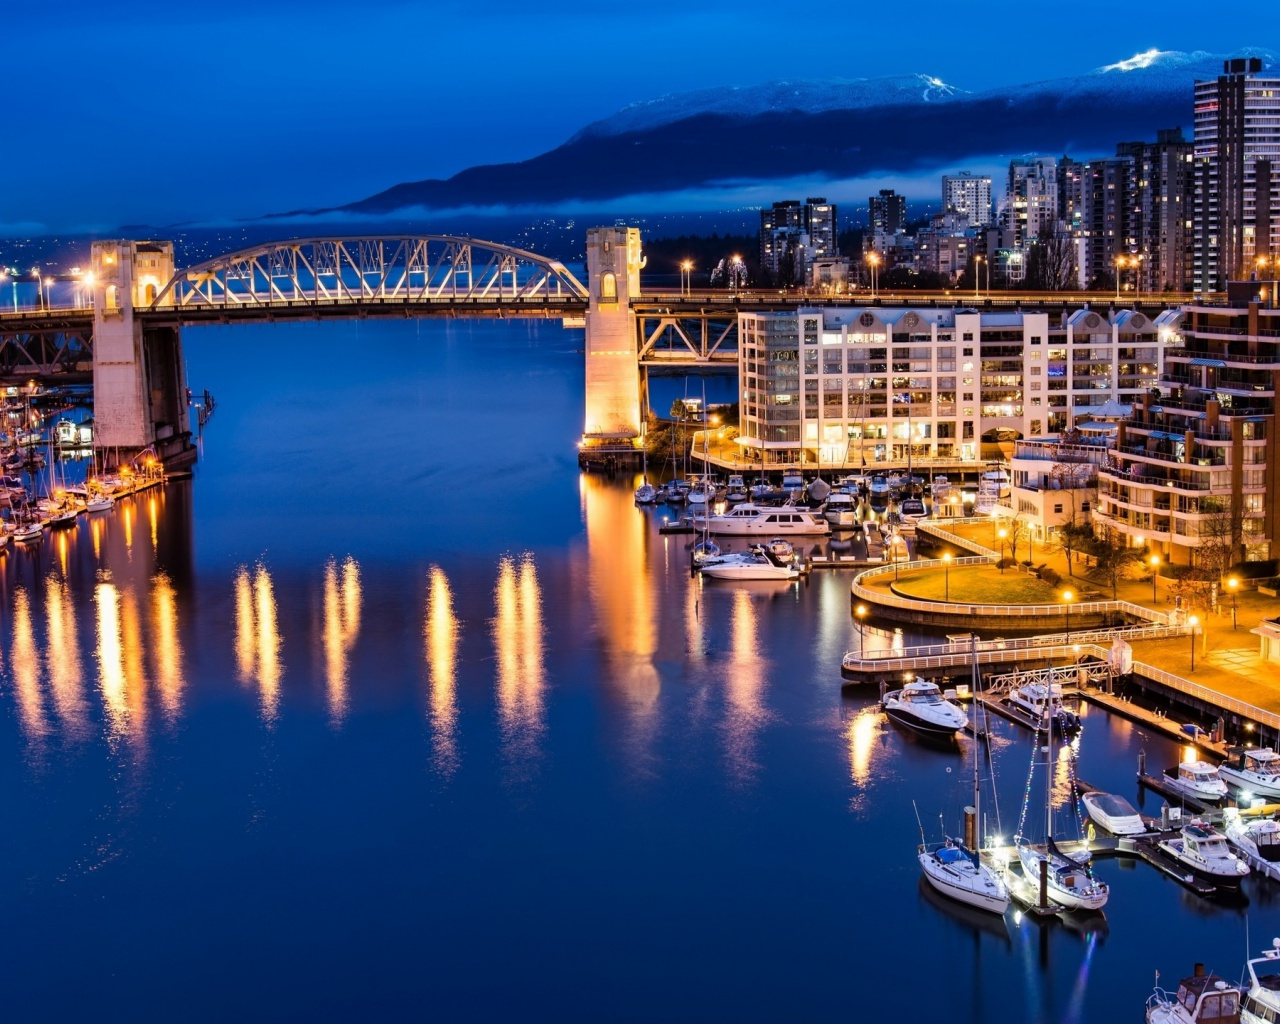 1280x1024 vancouver canada night view desktop pc and mac for Home wallpaper vancouver